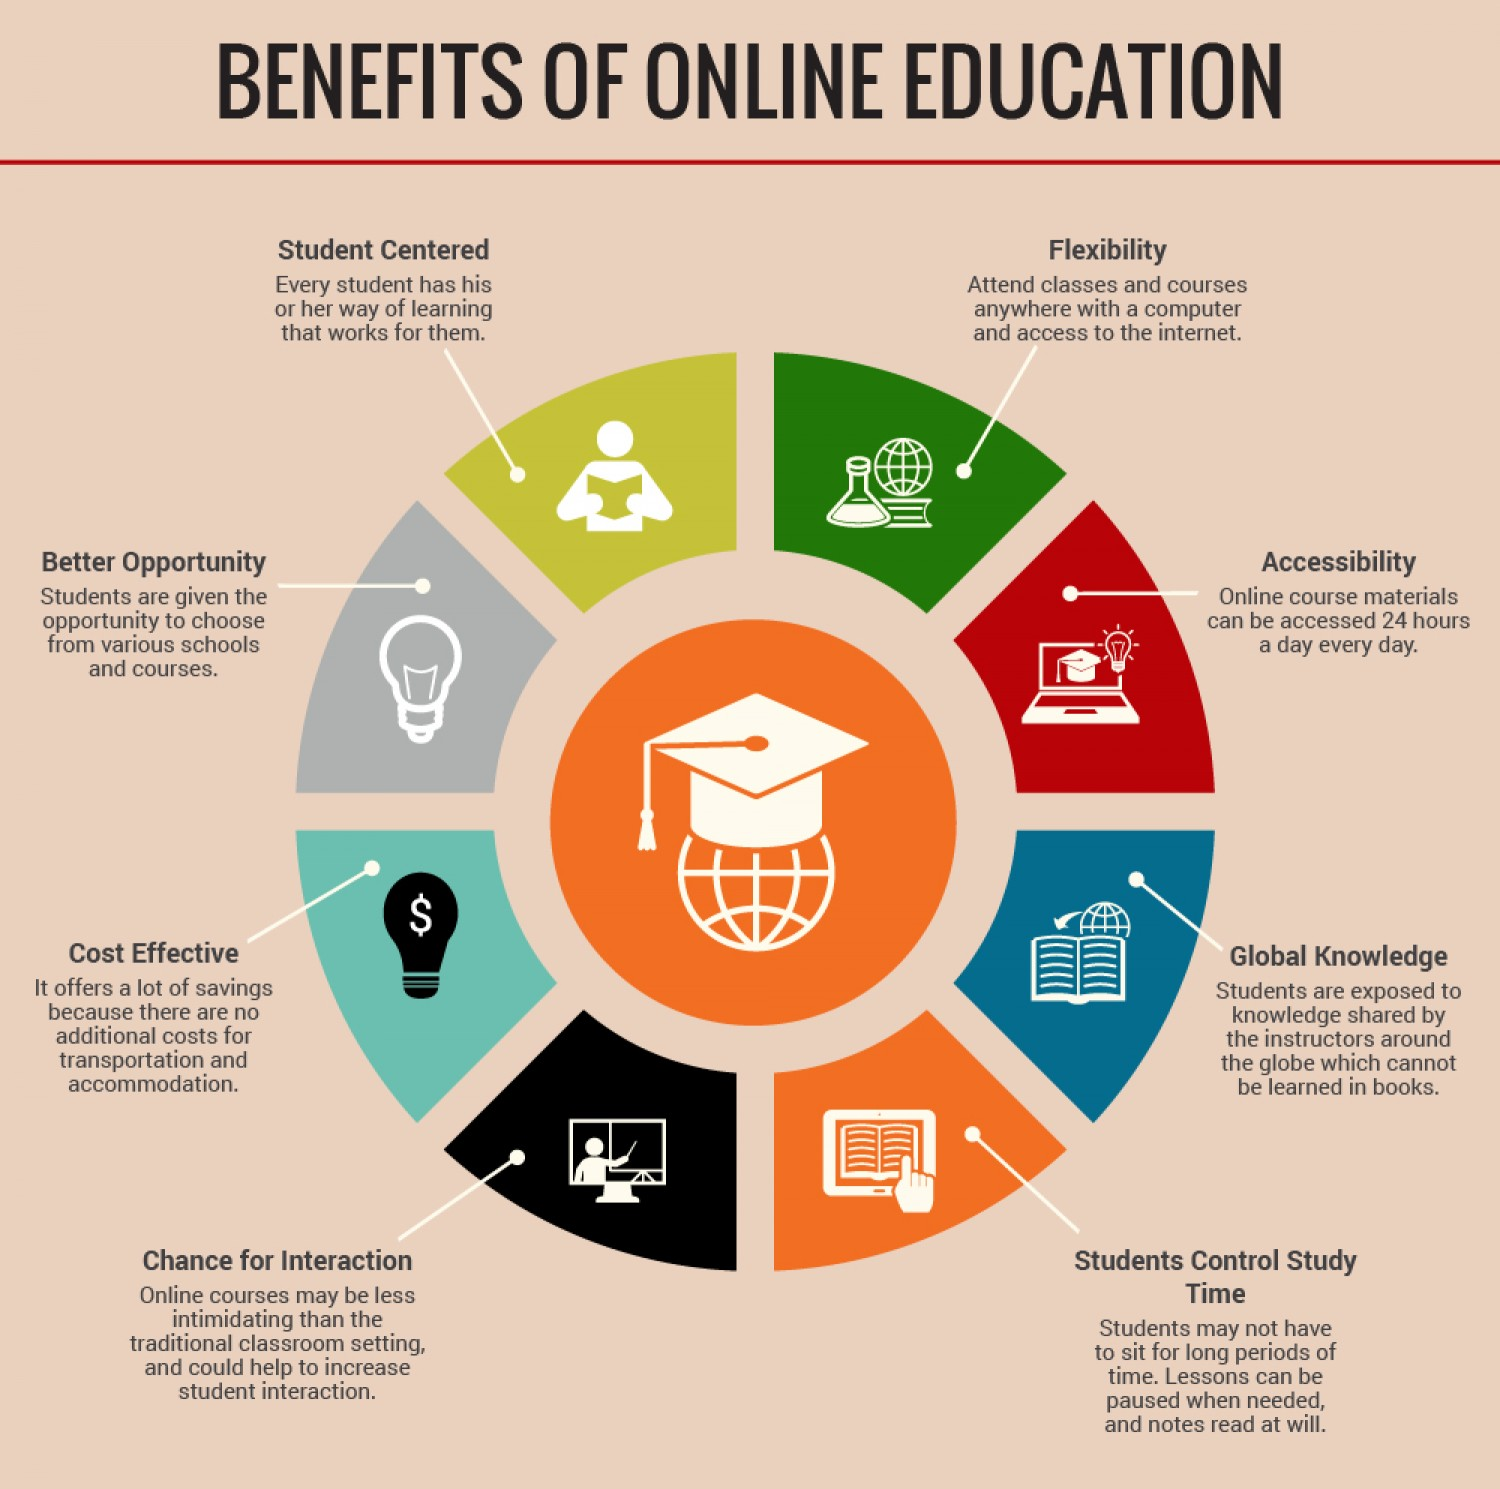 an introduction to the benefits of traditional education versus online or televised Nowadays, many students prefer online education to the regular classroom education further down are the main benefits of online education 4 cheap the other key advantage of online education is that it is quite cheap, especially when compared to traditional schools.